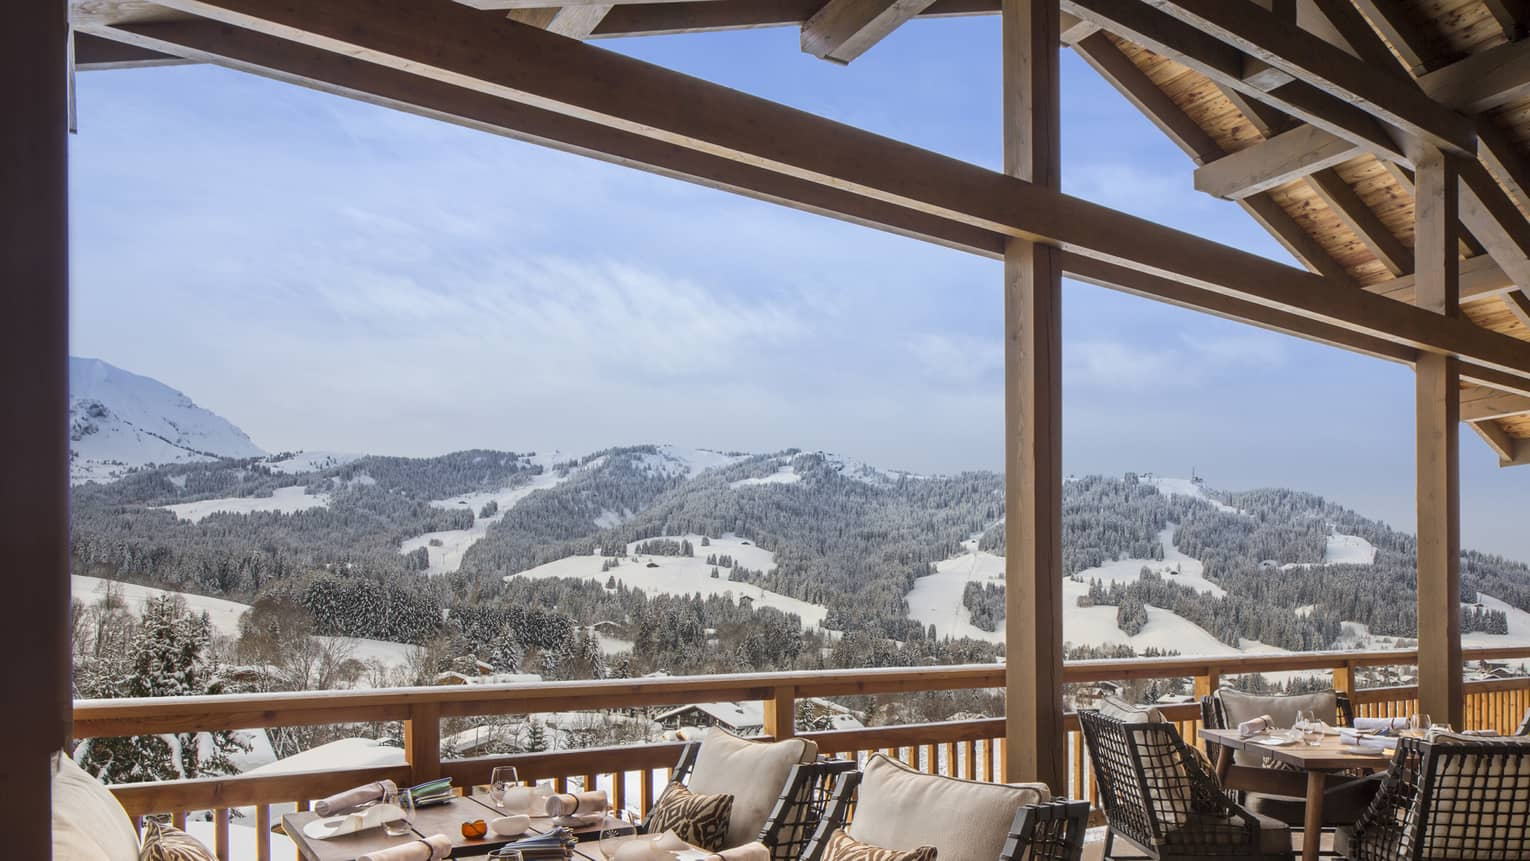 Dining tables, chairs, cushions under wood roof looking over snow-covered mountains